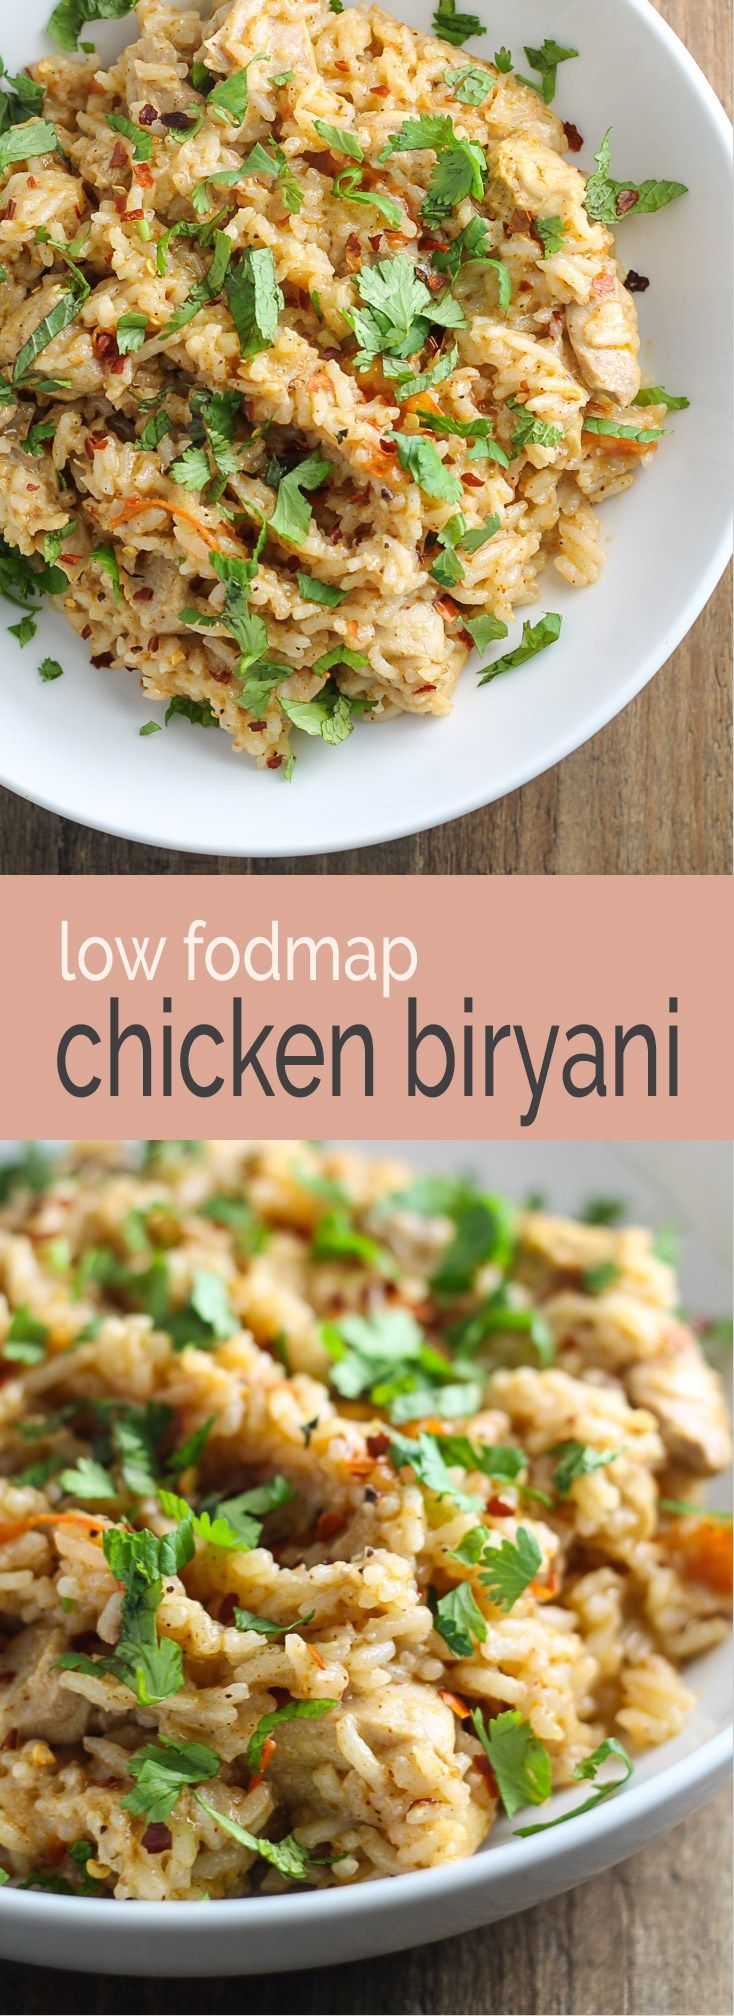 Looking for a warm, comforting bowl of Indian-inspired goodness?! Try this Low Fodmap Chicken Biryani! This recipe is gluten free and dairy free, too!